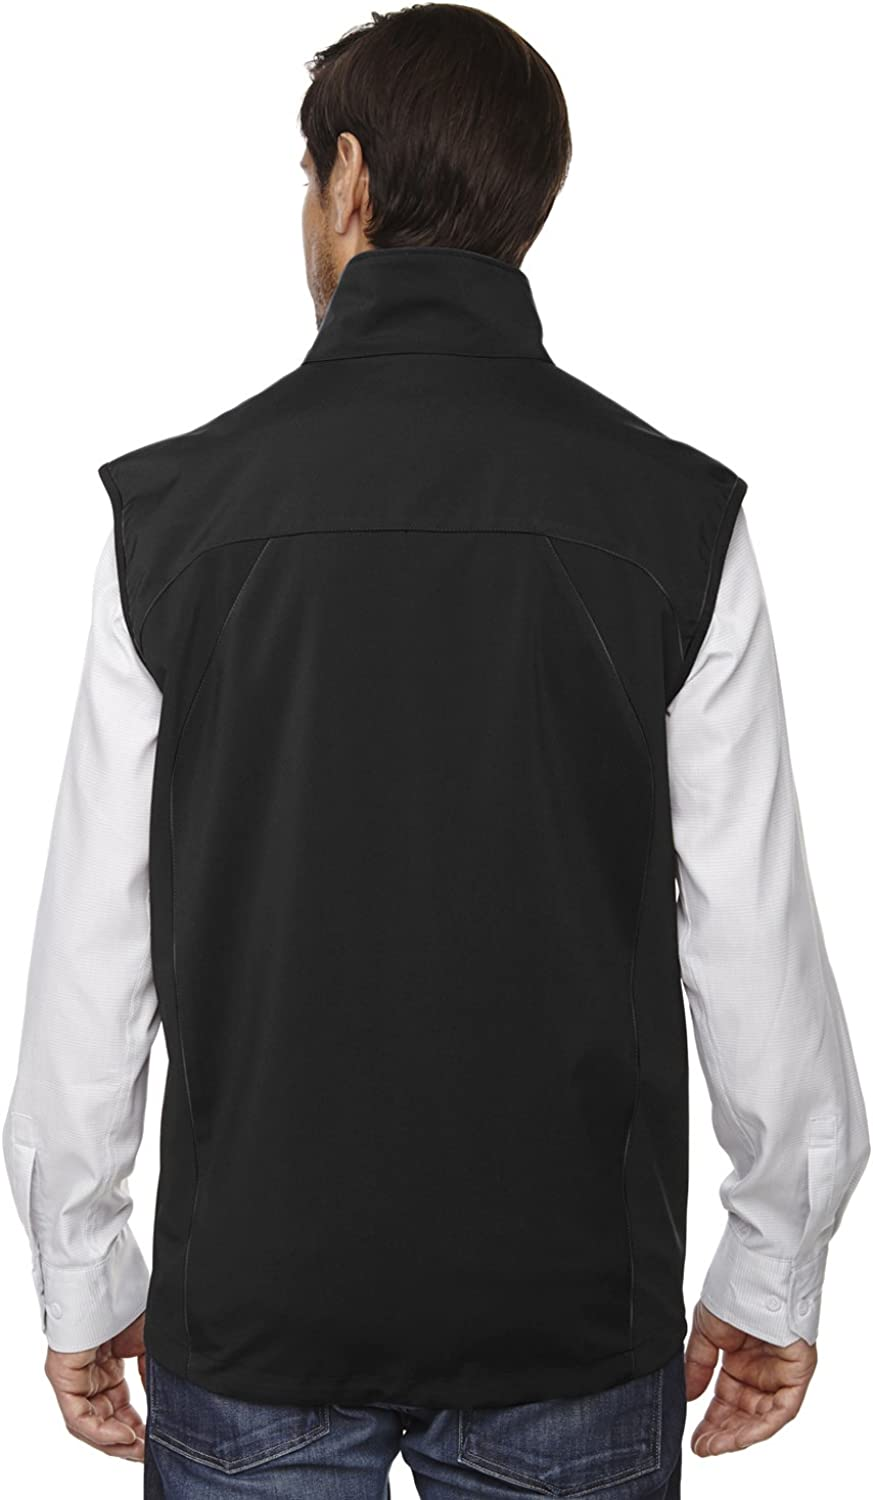 North End Mens 3-Layer Soft Shell Performance Vest